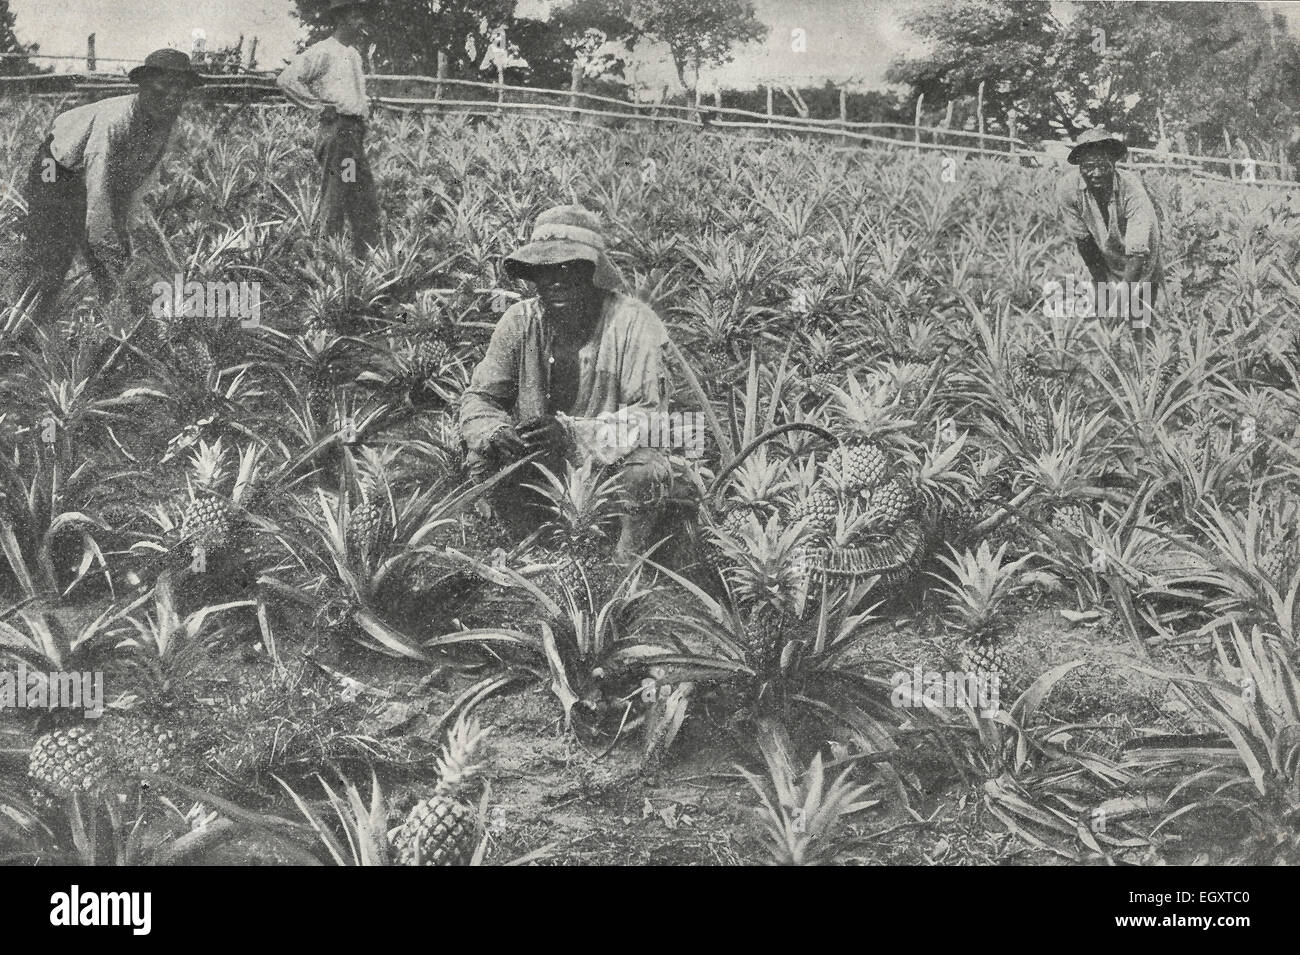 A South African Pineapple Field, 1890s - Stock Image